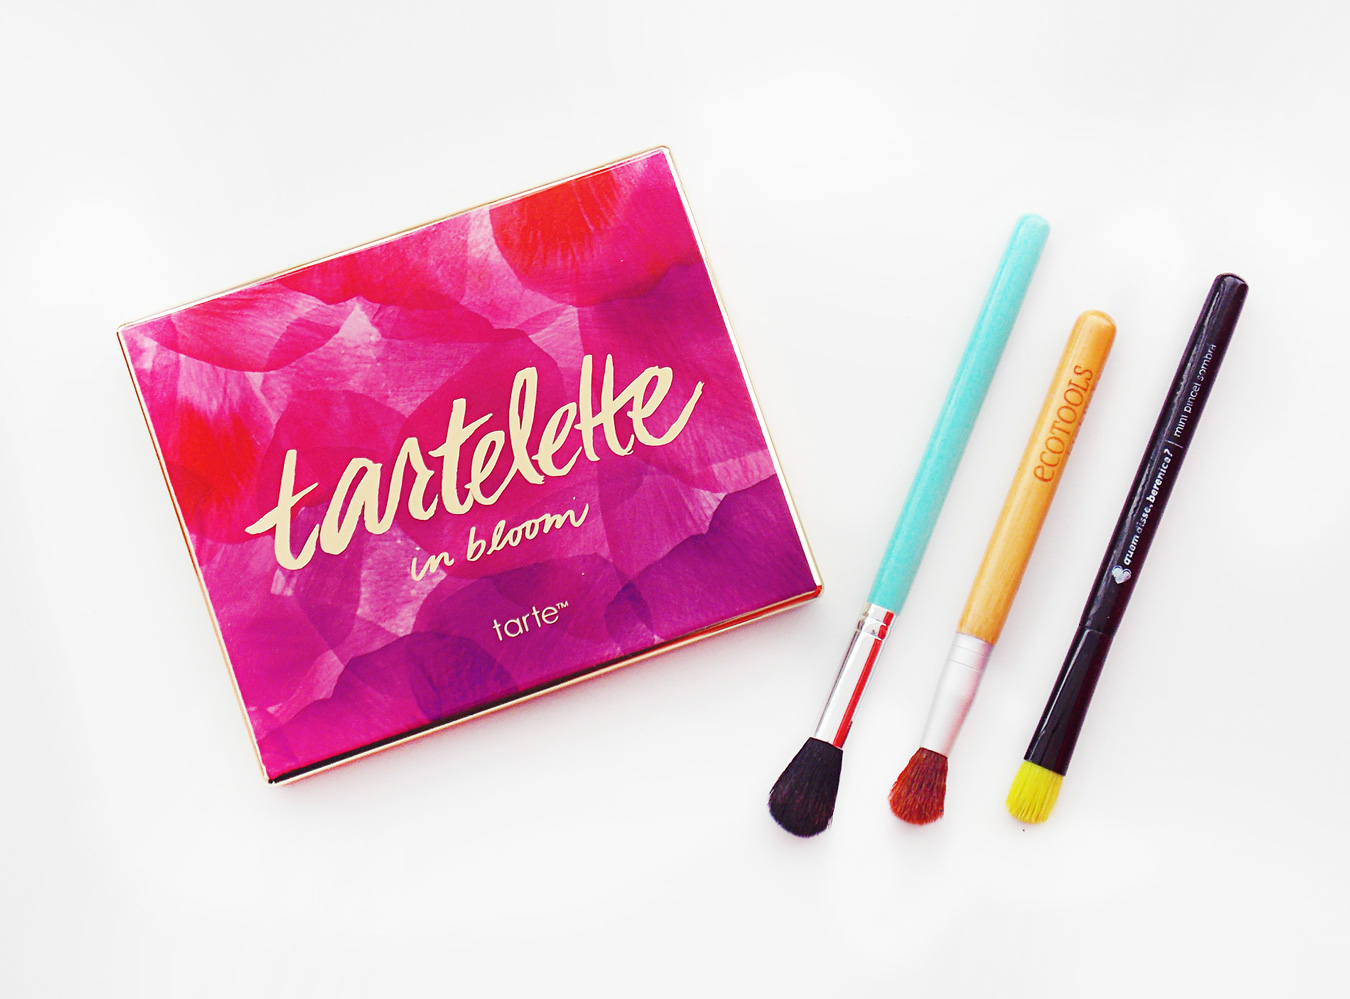 Tartelette In Bloom Review & Swatches